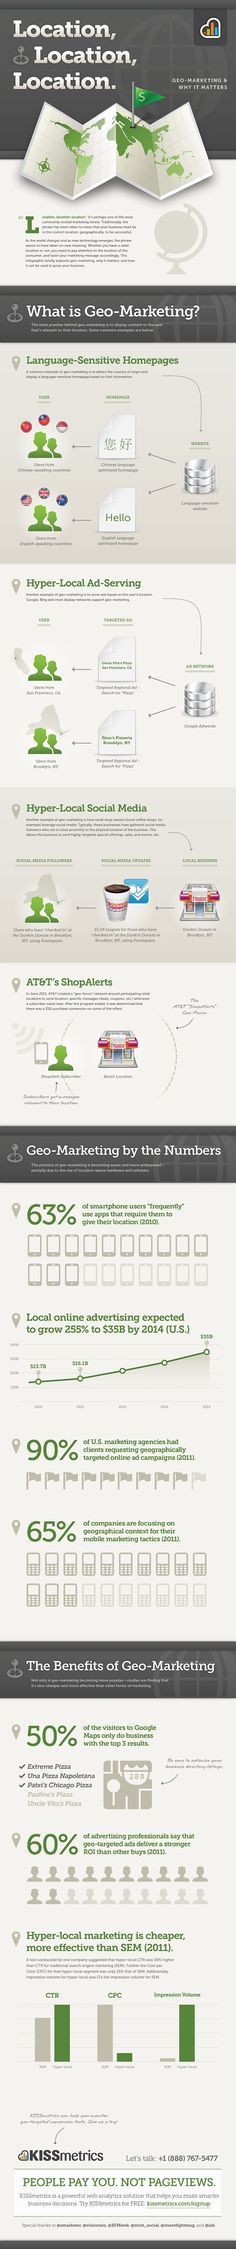 Geo/Location-based marketing infographic